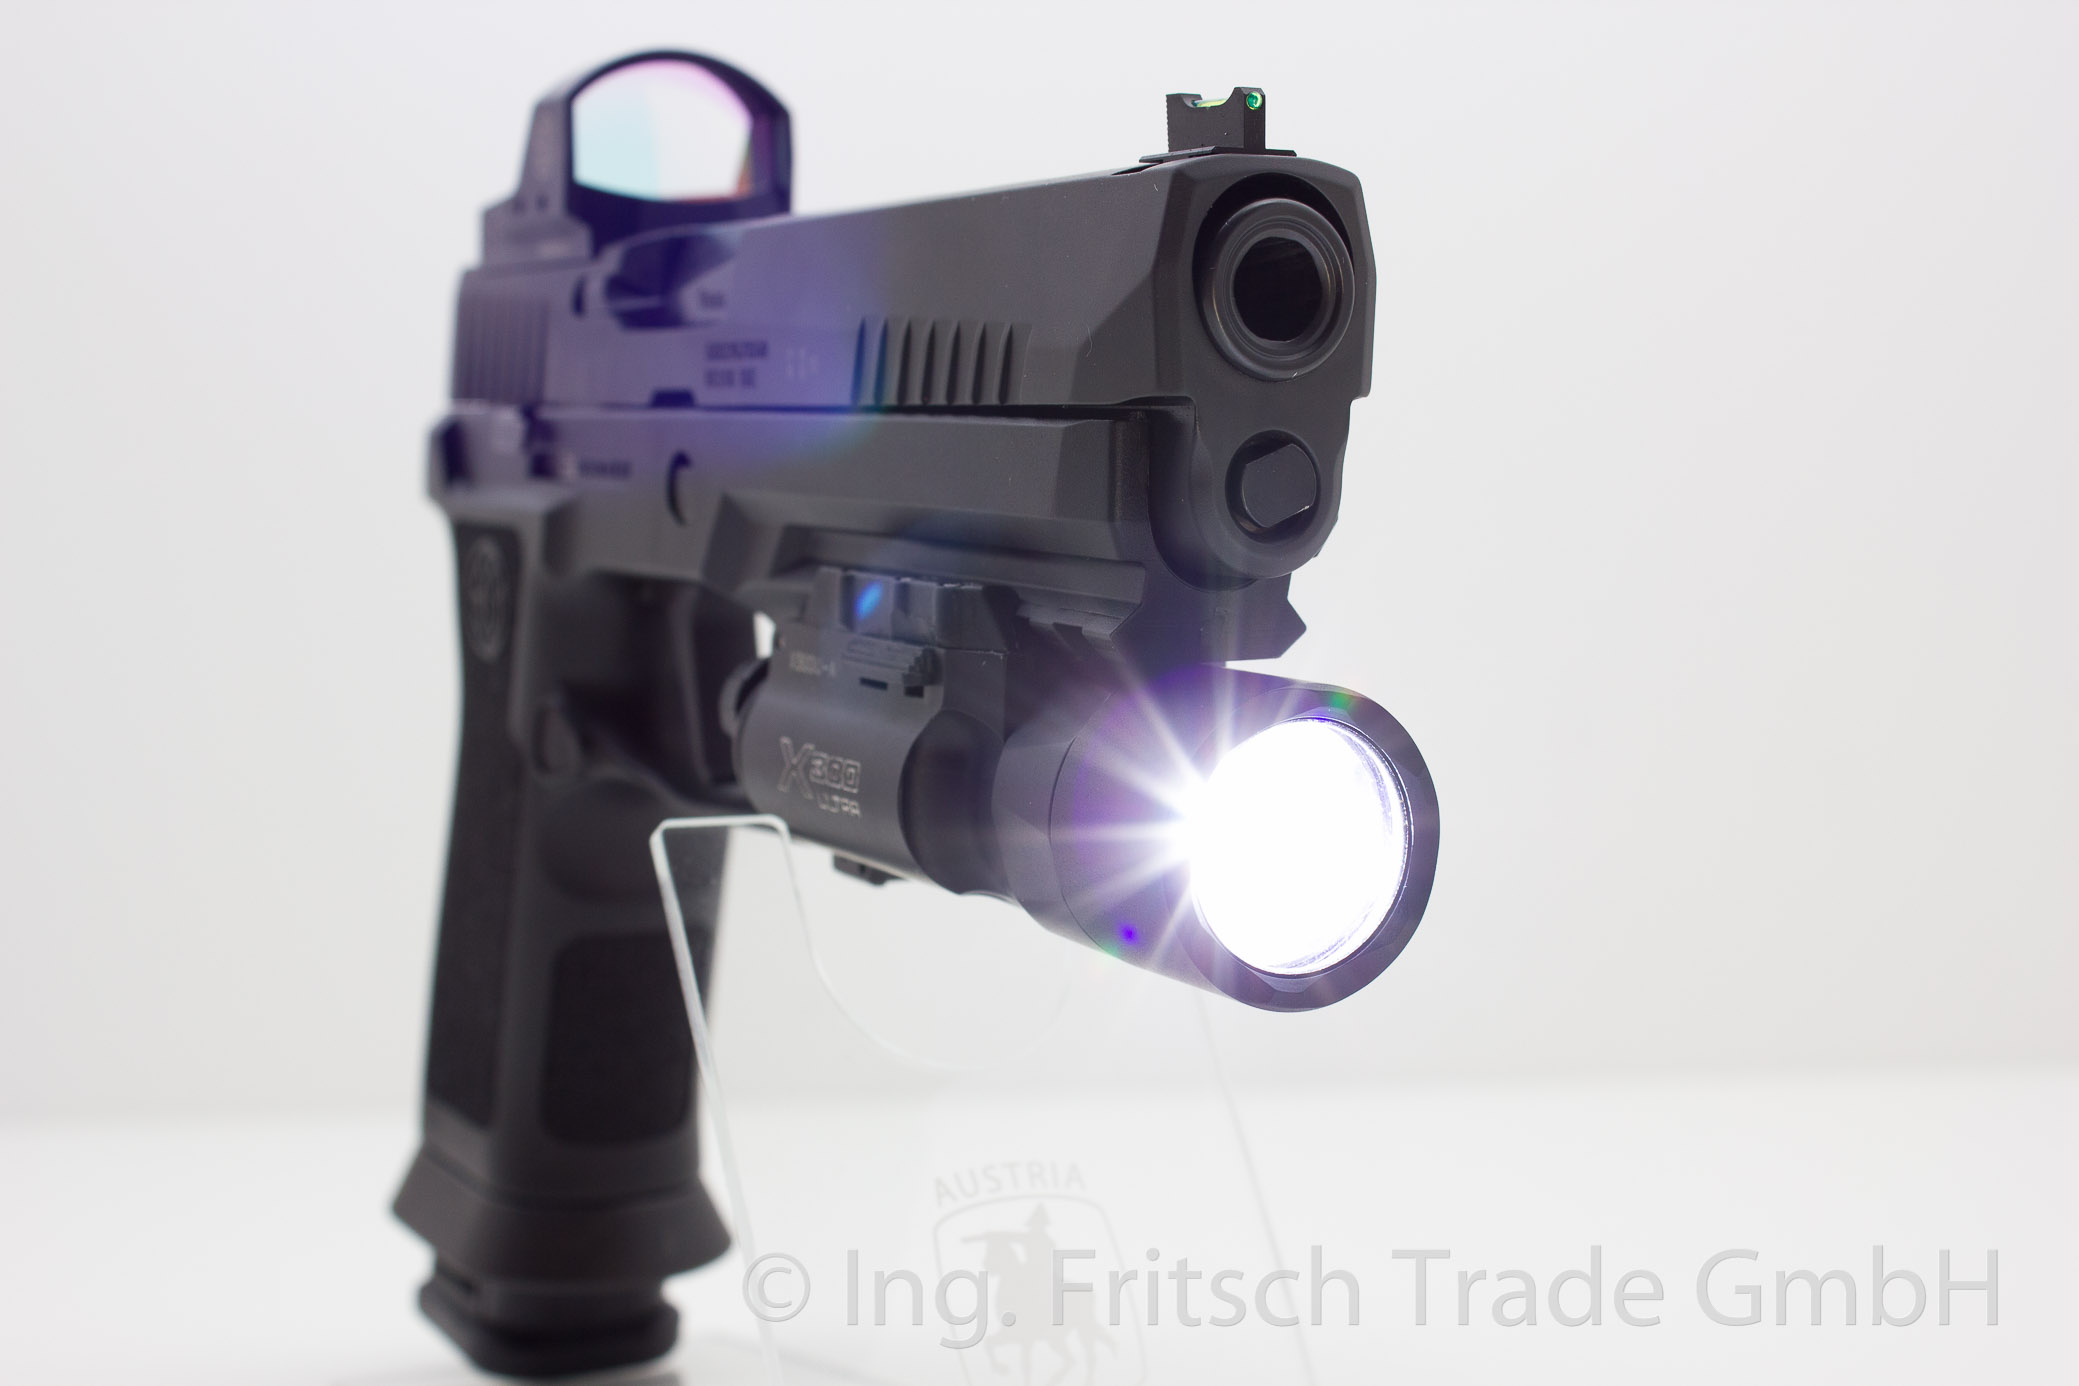 Surefire X300 Tactical Light - Image 7